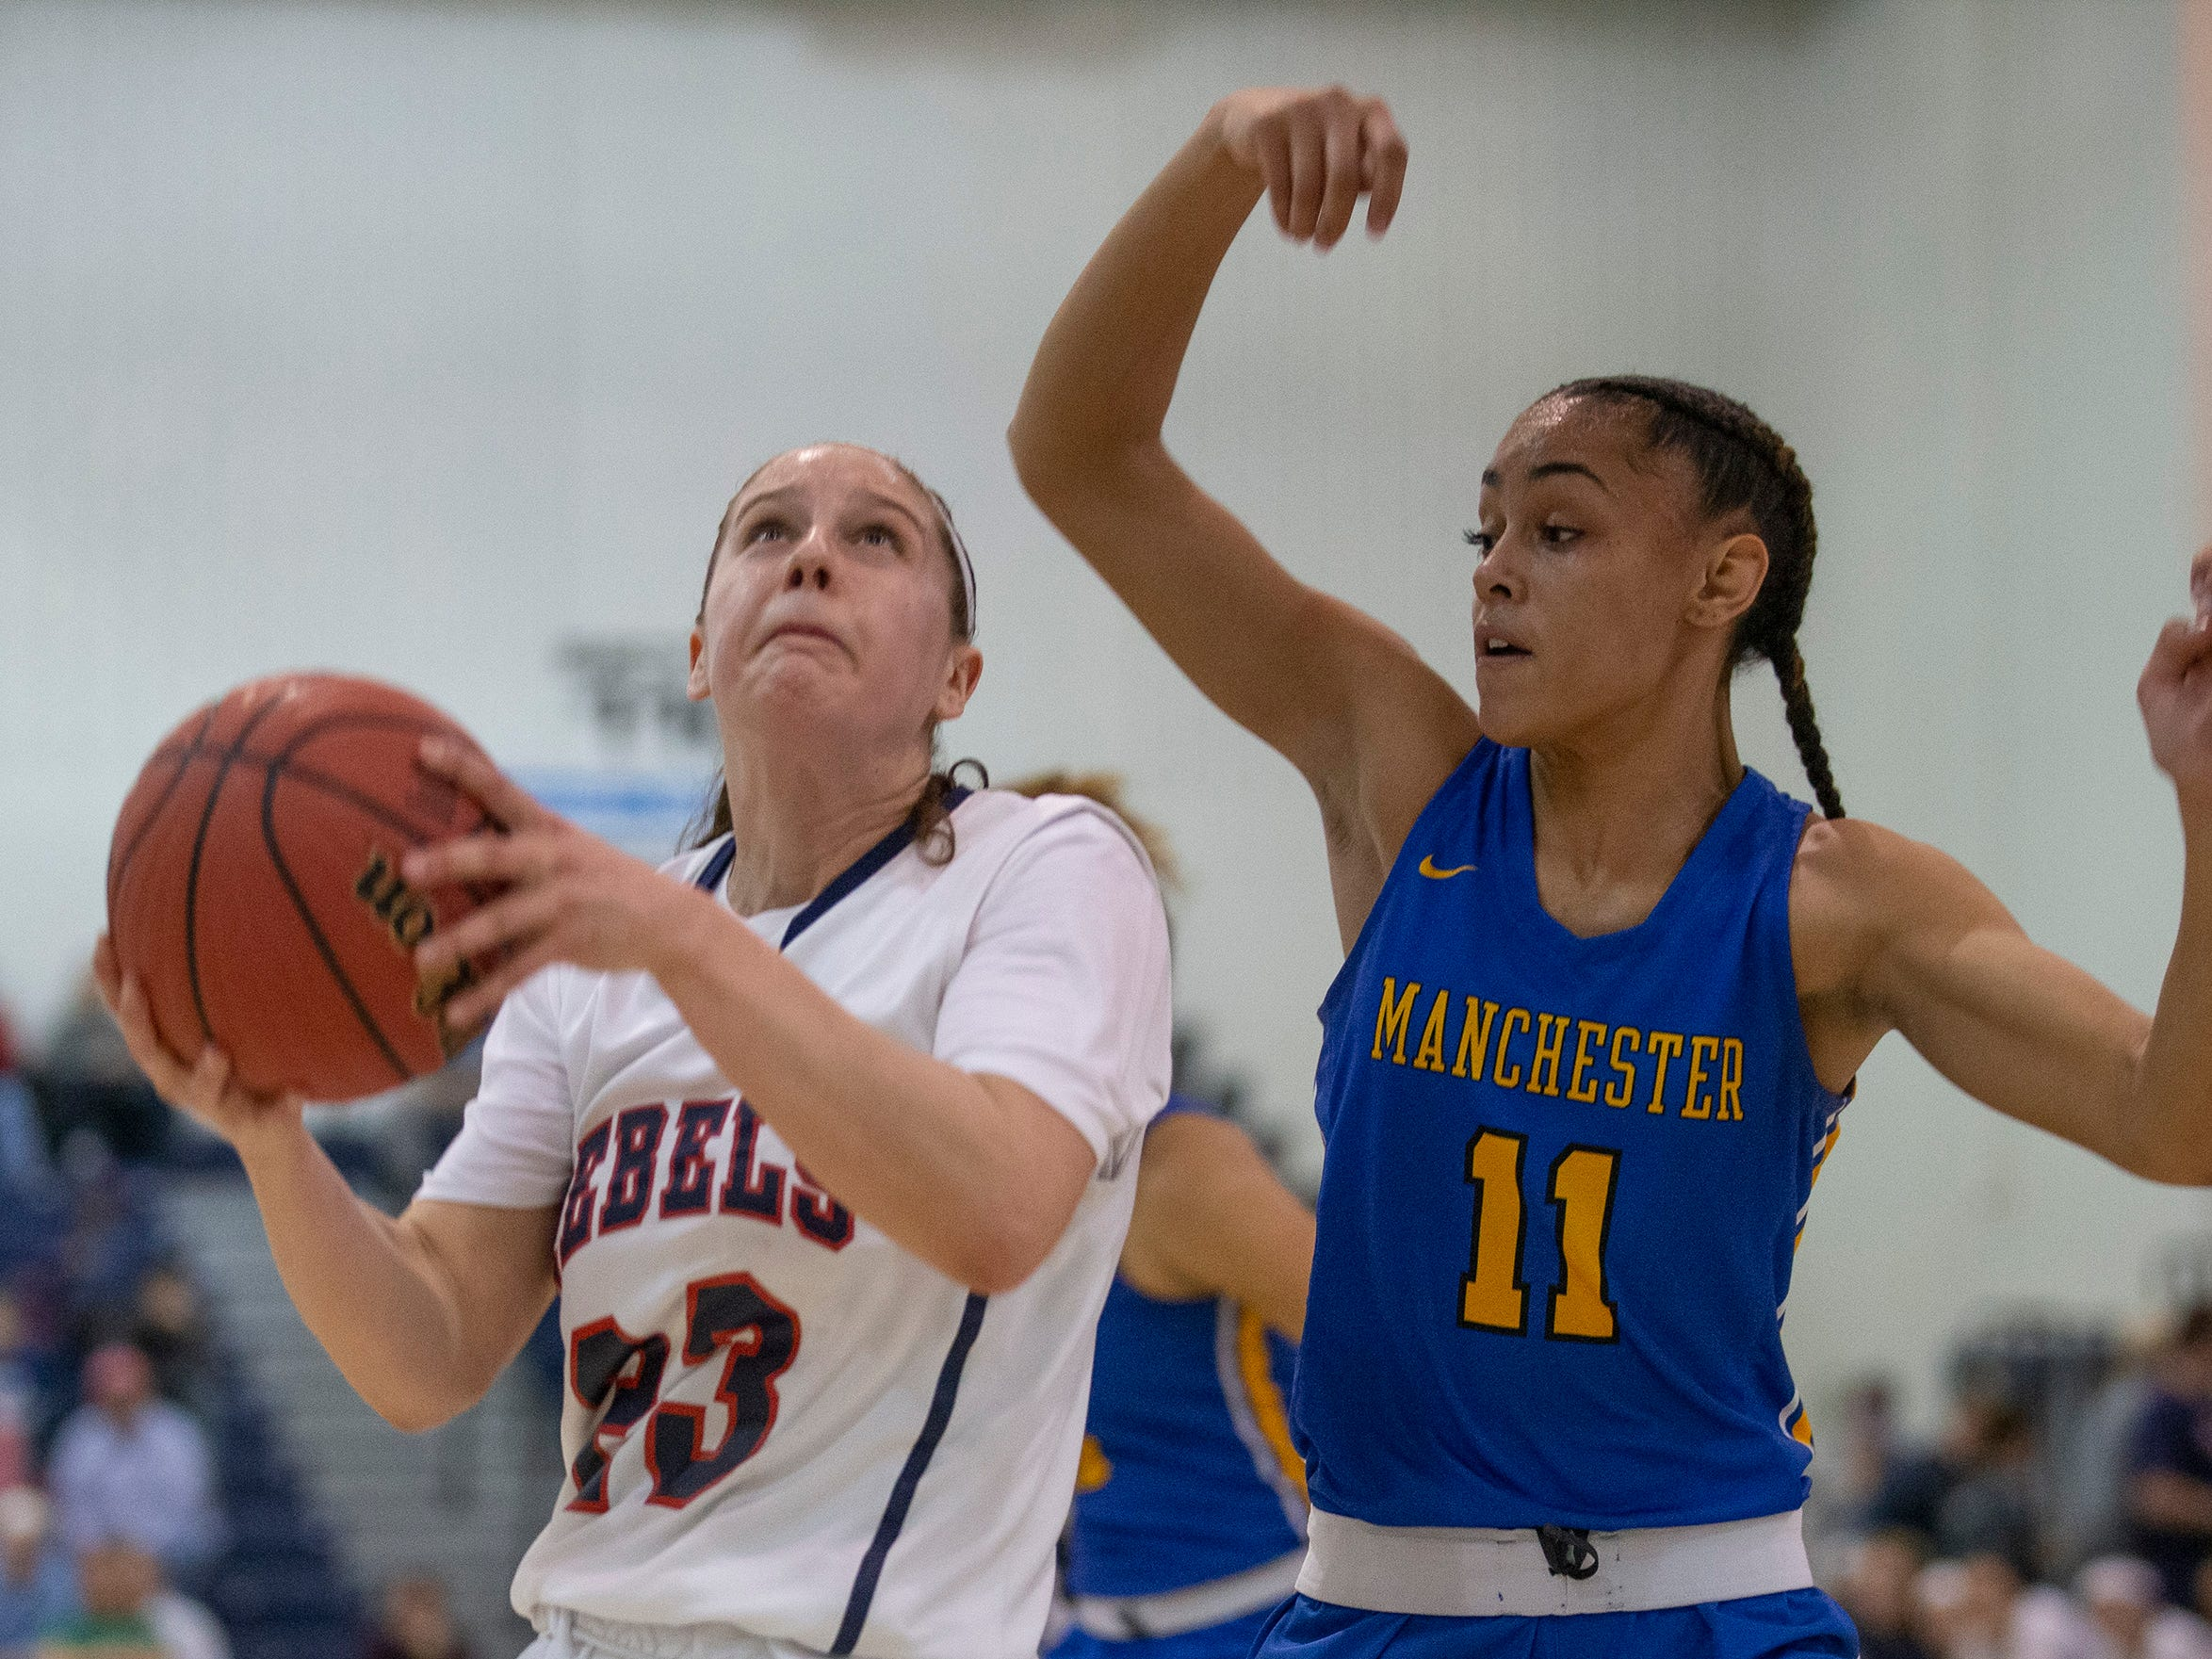 Saddle River Day's Michelle Sidor goes up with a shot as Manchester's Leilani Correa covers her. Manchester Girls Basketball vs Saddle River Day in NJSIAA Tournament of Champions Semifinal in Toms River on March 14, 2019.